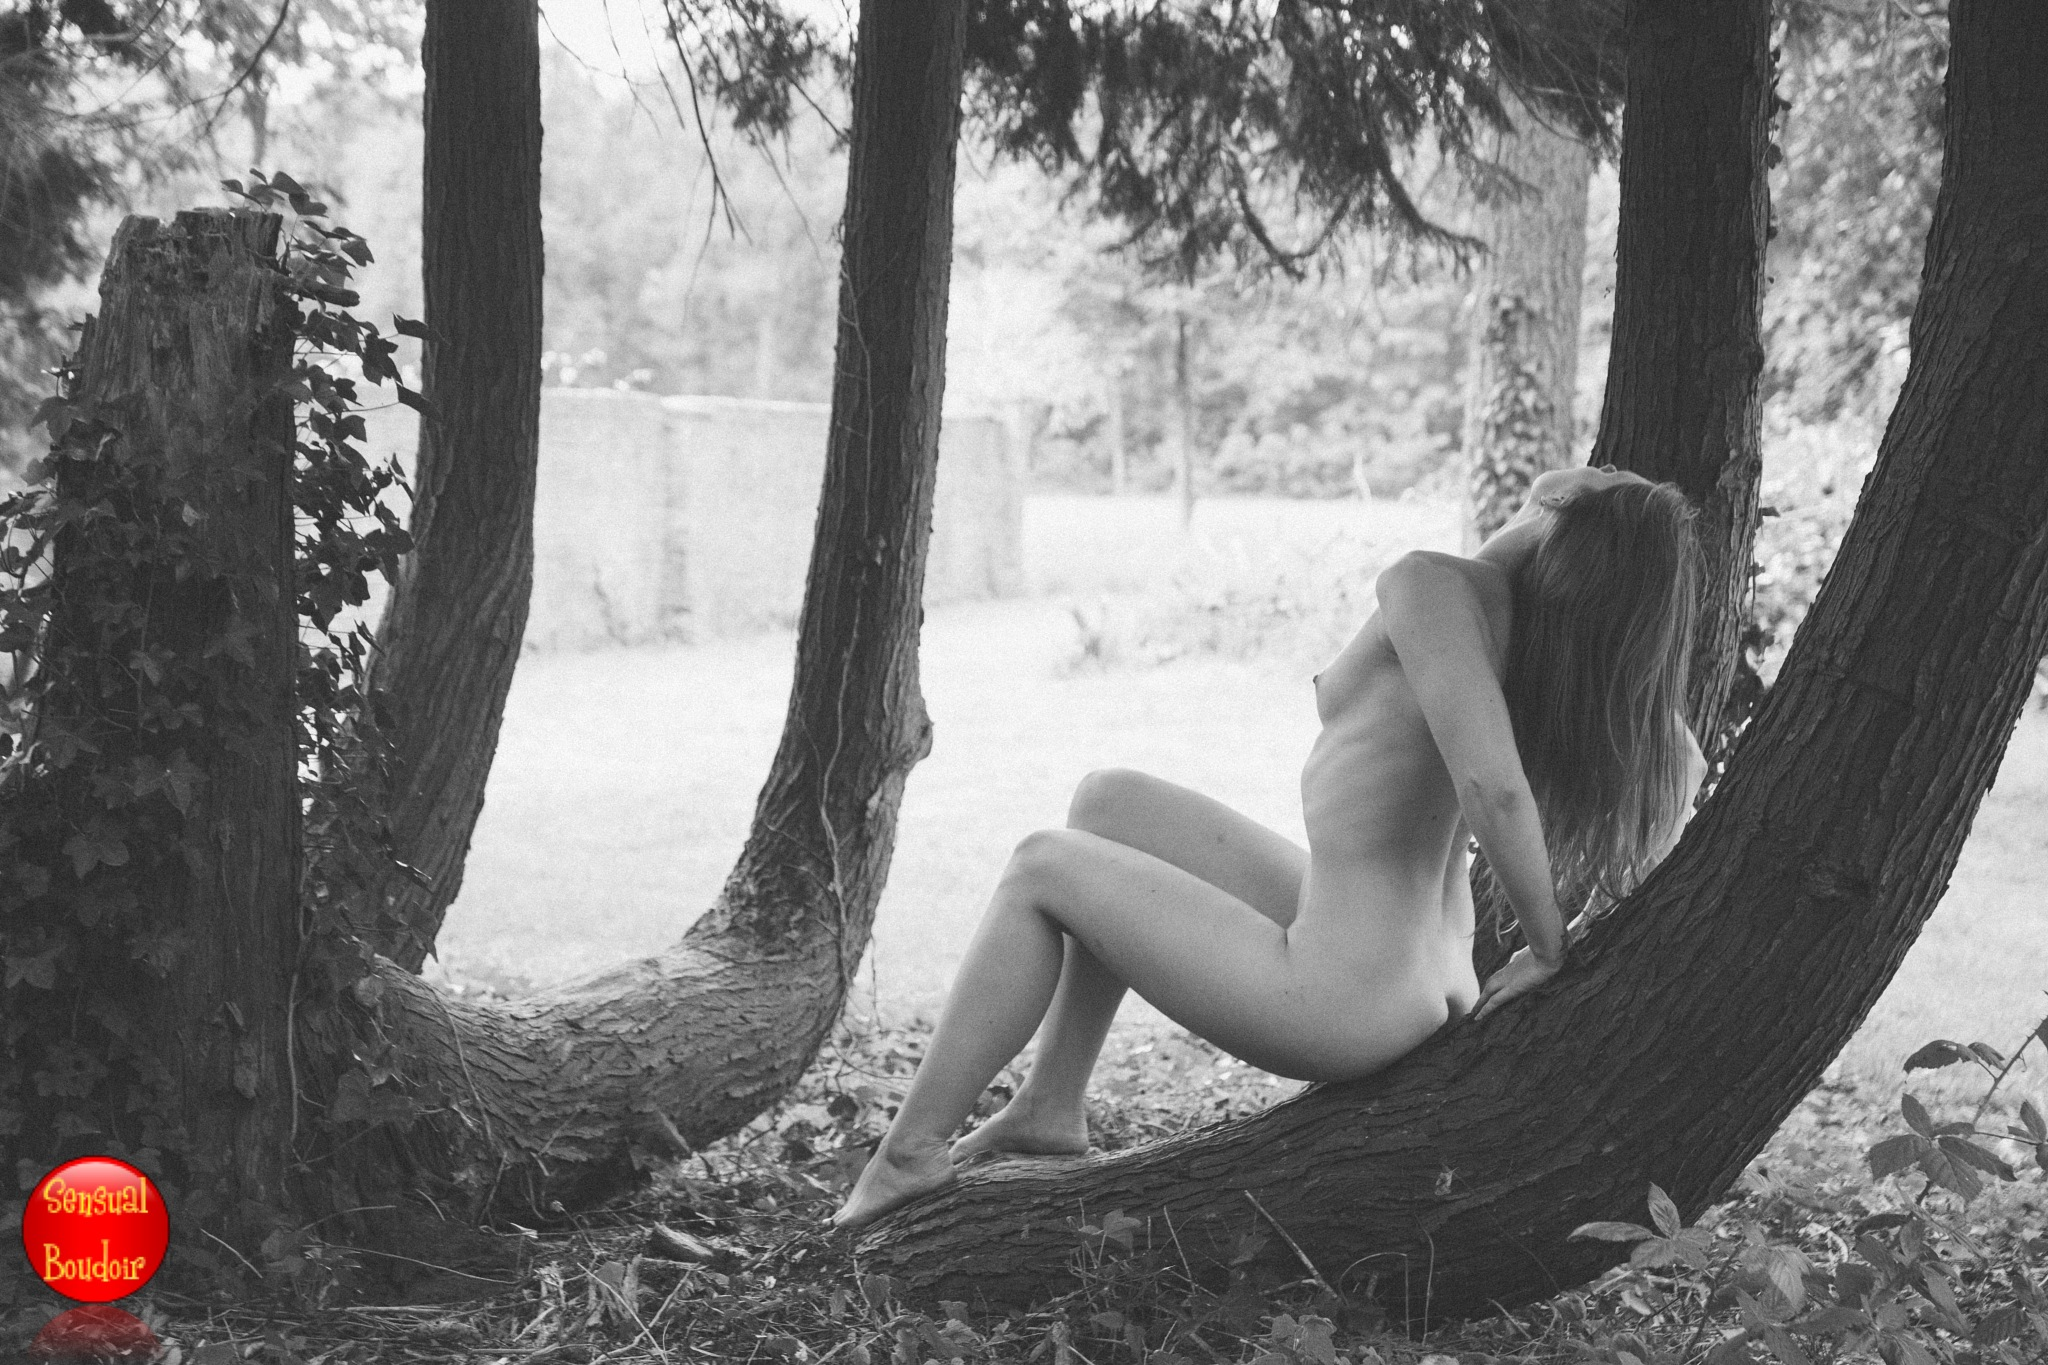 Nude by a tree by Sensual and Boudoir